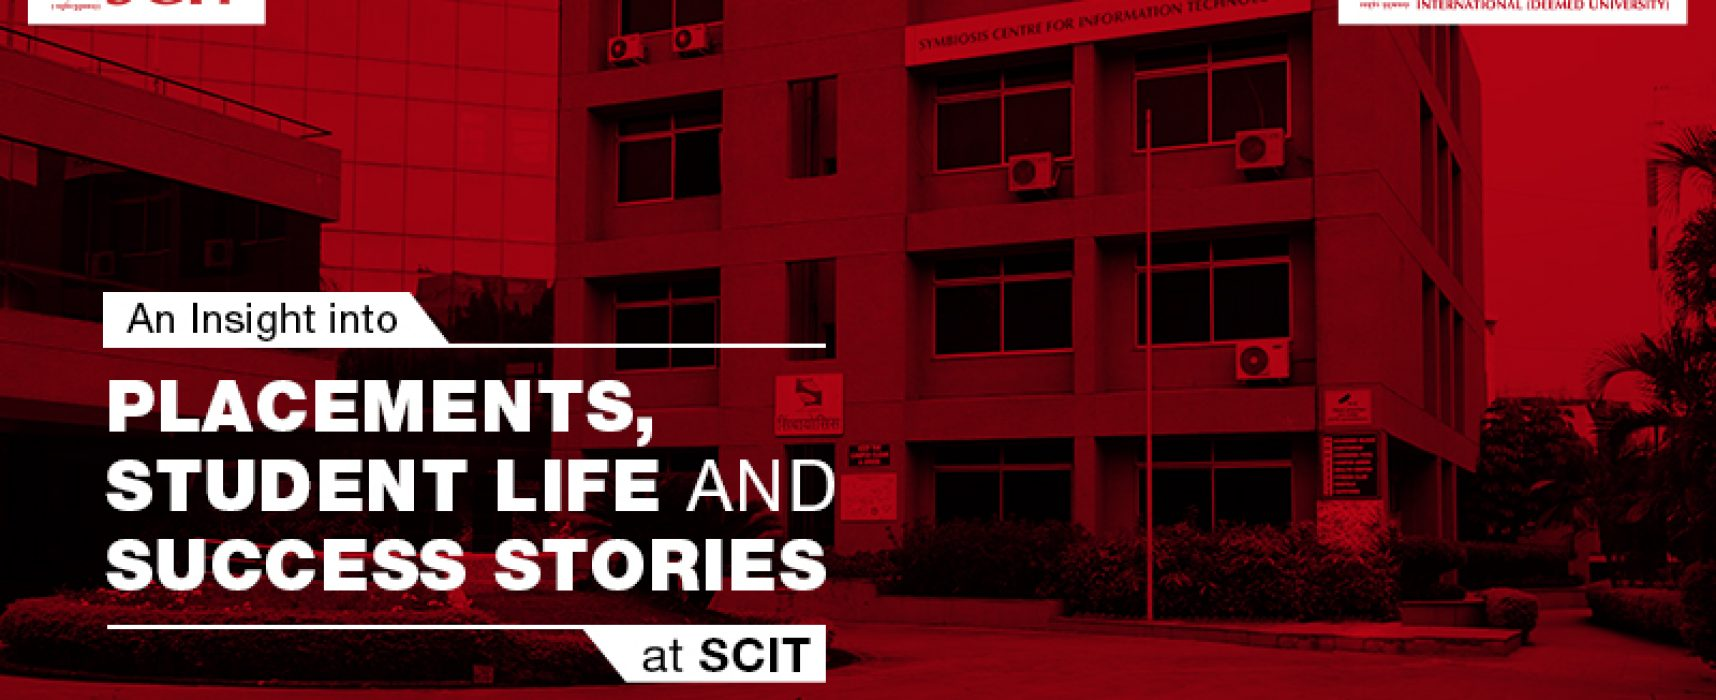 An Insight into Placements, Student Life and Success Stories at SCIT